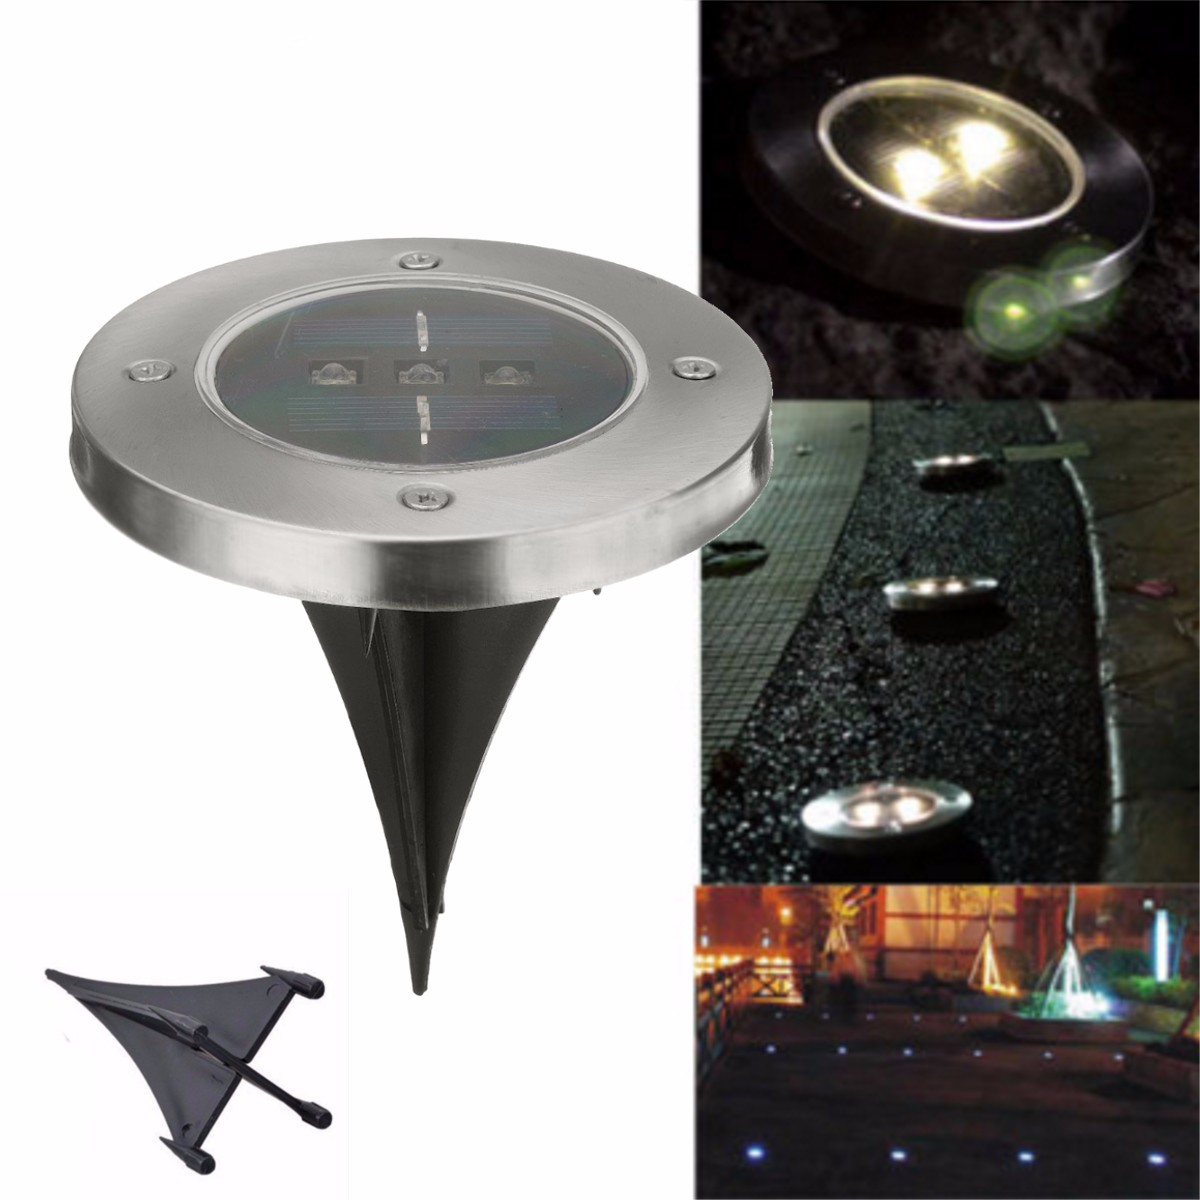 Jiguoor 5pcs Solar Powered 3 LED Solar Light Outdoor LED Garden Light Lawn Path Yard Fence Stainless Steel Buried Inground Lamp huayang outdoor solar powered led lamp lighting garden path wall fence lawn warm white light